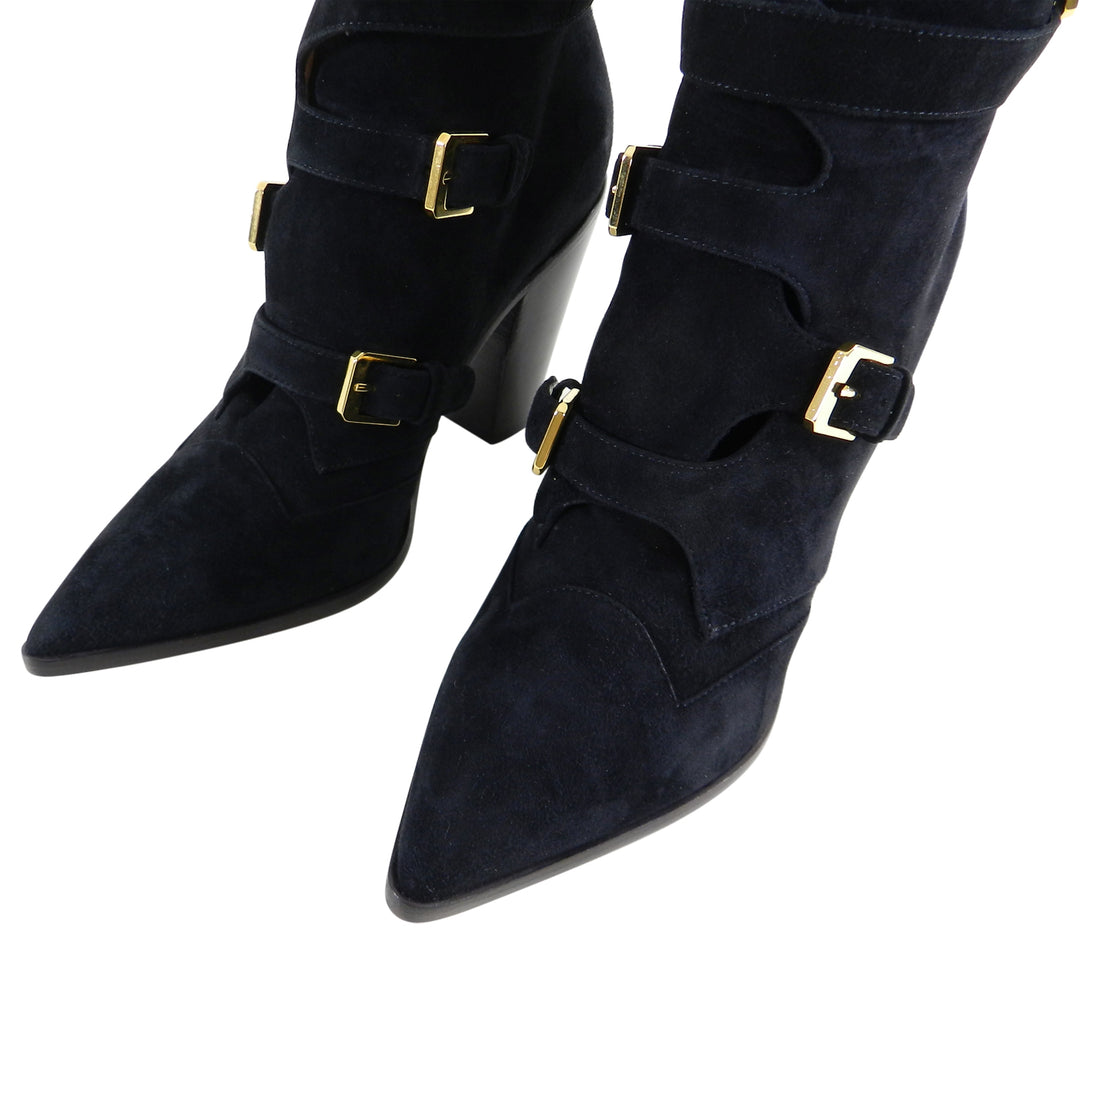 Laurence Dacade Black Suede and Gold Buckle Gregoria Ankle Boots - 37